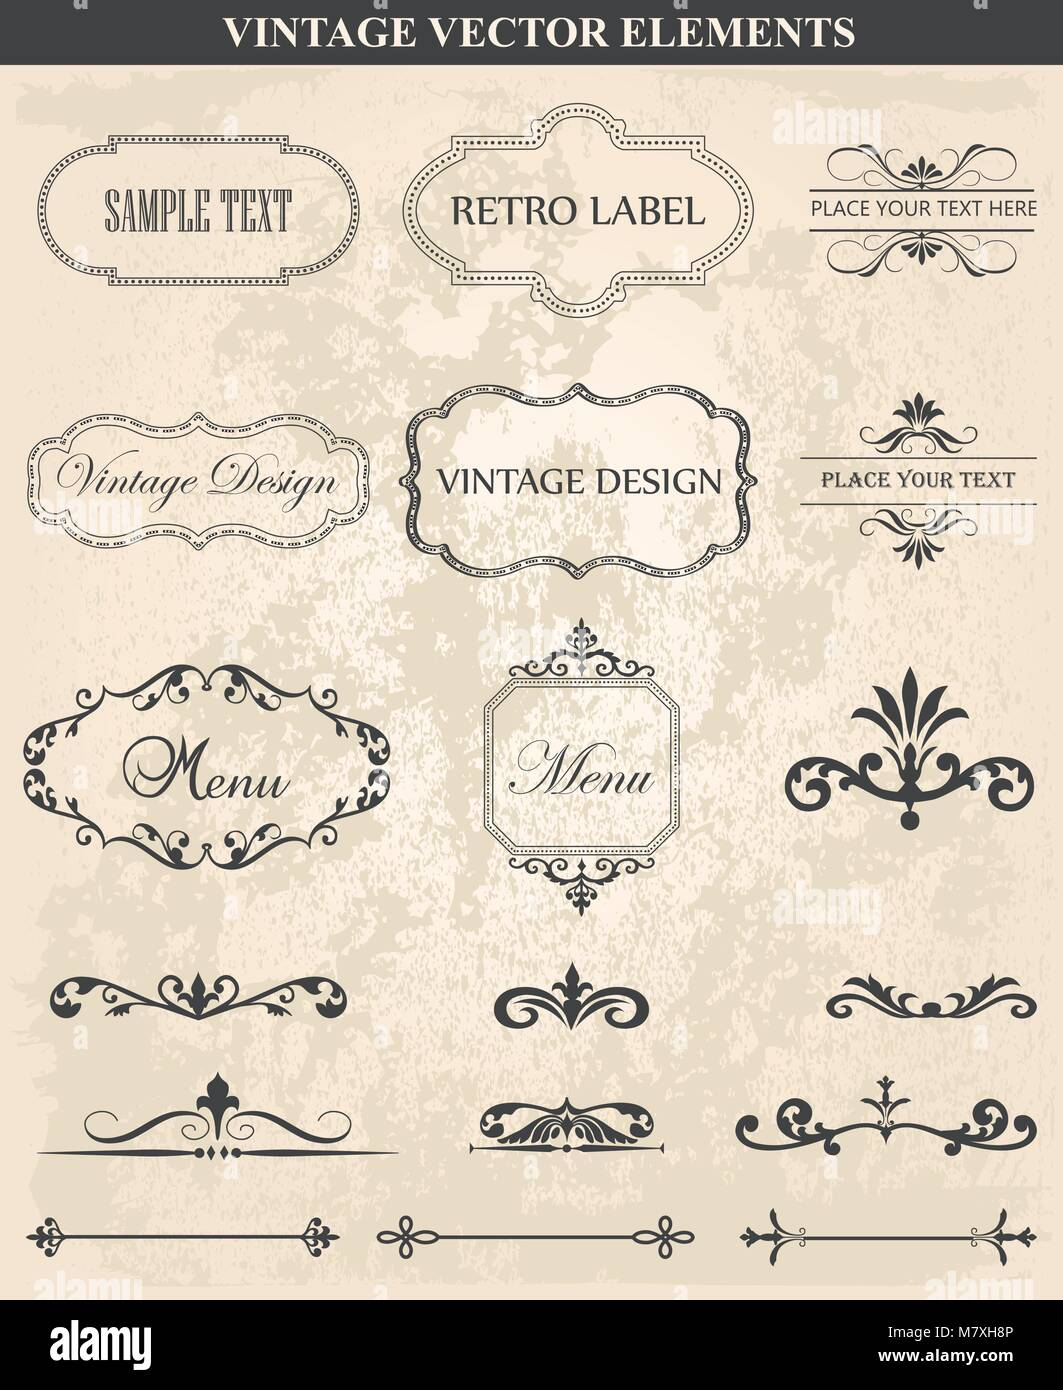 Decorative Vintage Set Of Calligraphic Design Elements Frames Borders Floral Ornaments Page Decoration Abstract Frame In Various